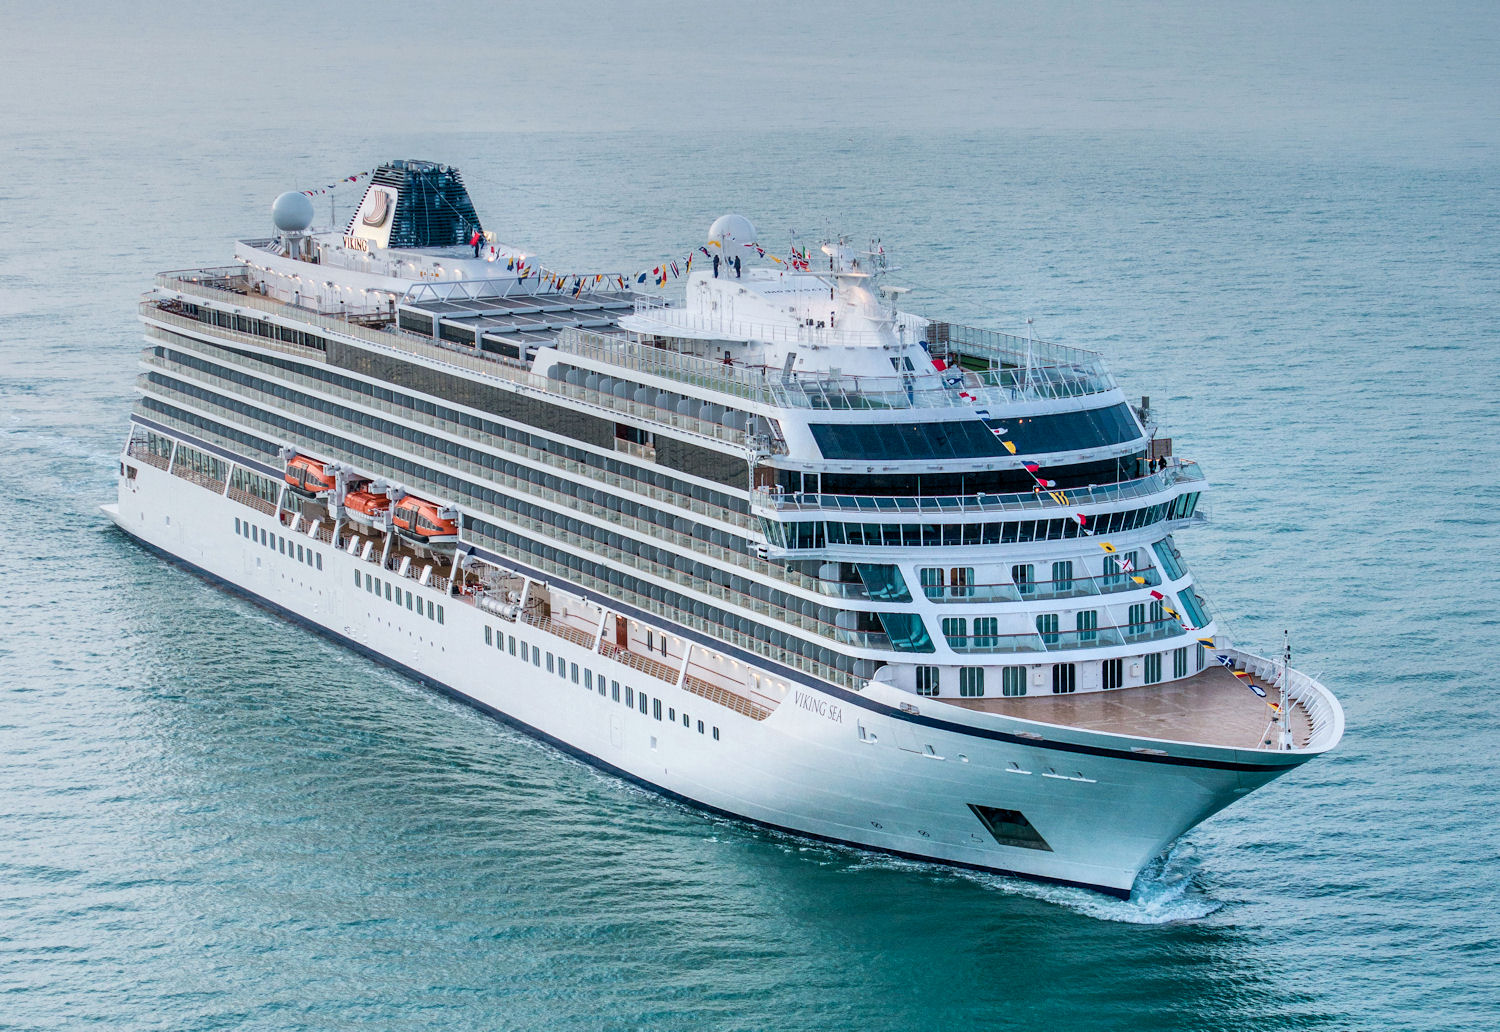 The Viking Sea to be christened in Greenwich, England, May 5, 2016. Photo: © Viking Cruises. Unauthorized use is prohibited.